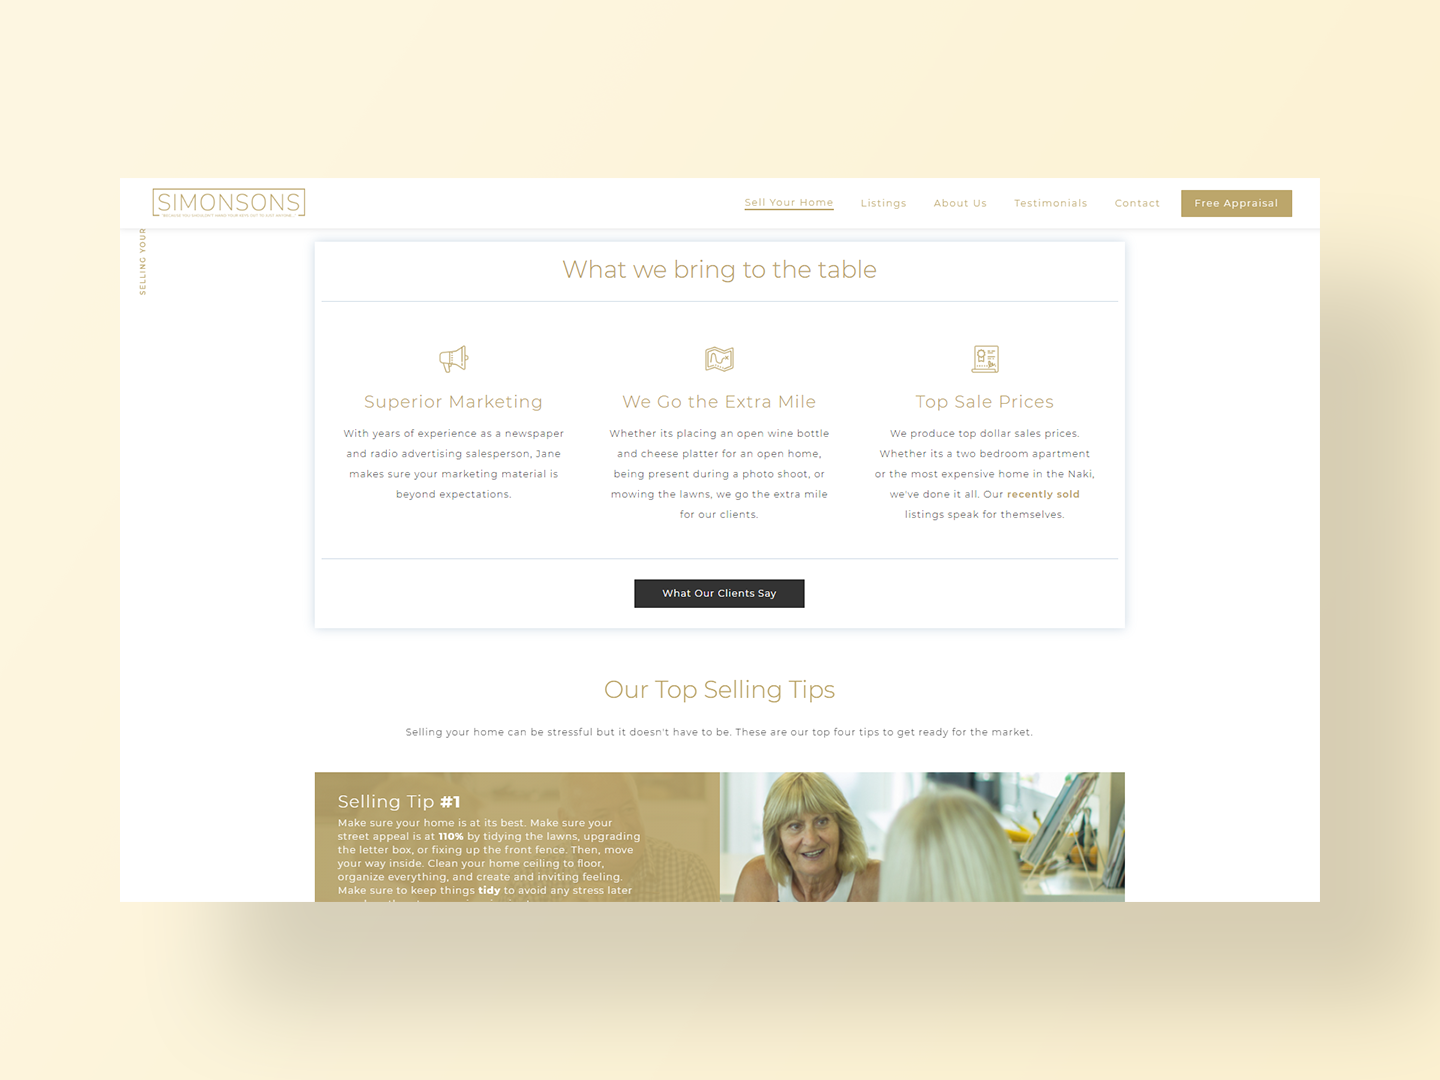 Team Simonsons sell your home page